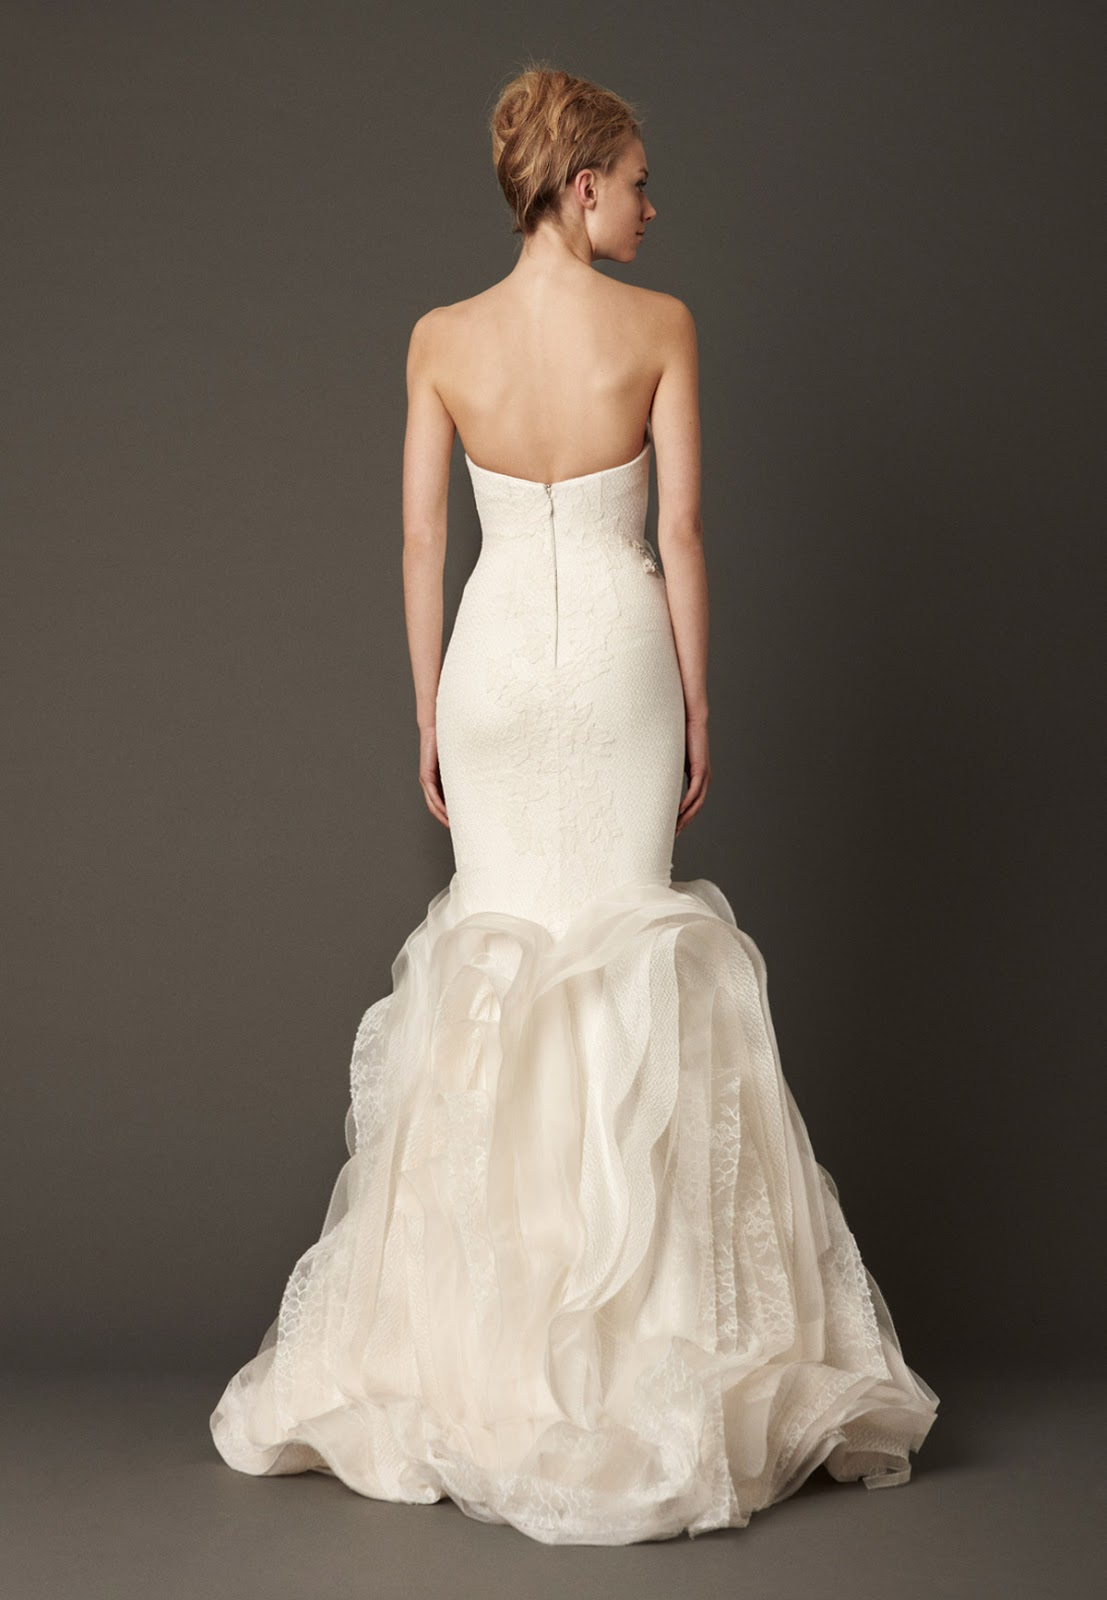 Dressybridal vera wang fall 2013 ruffled wedding gowns for Cheap vera wang wedding dress